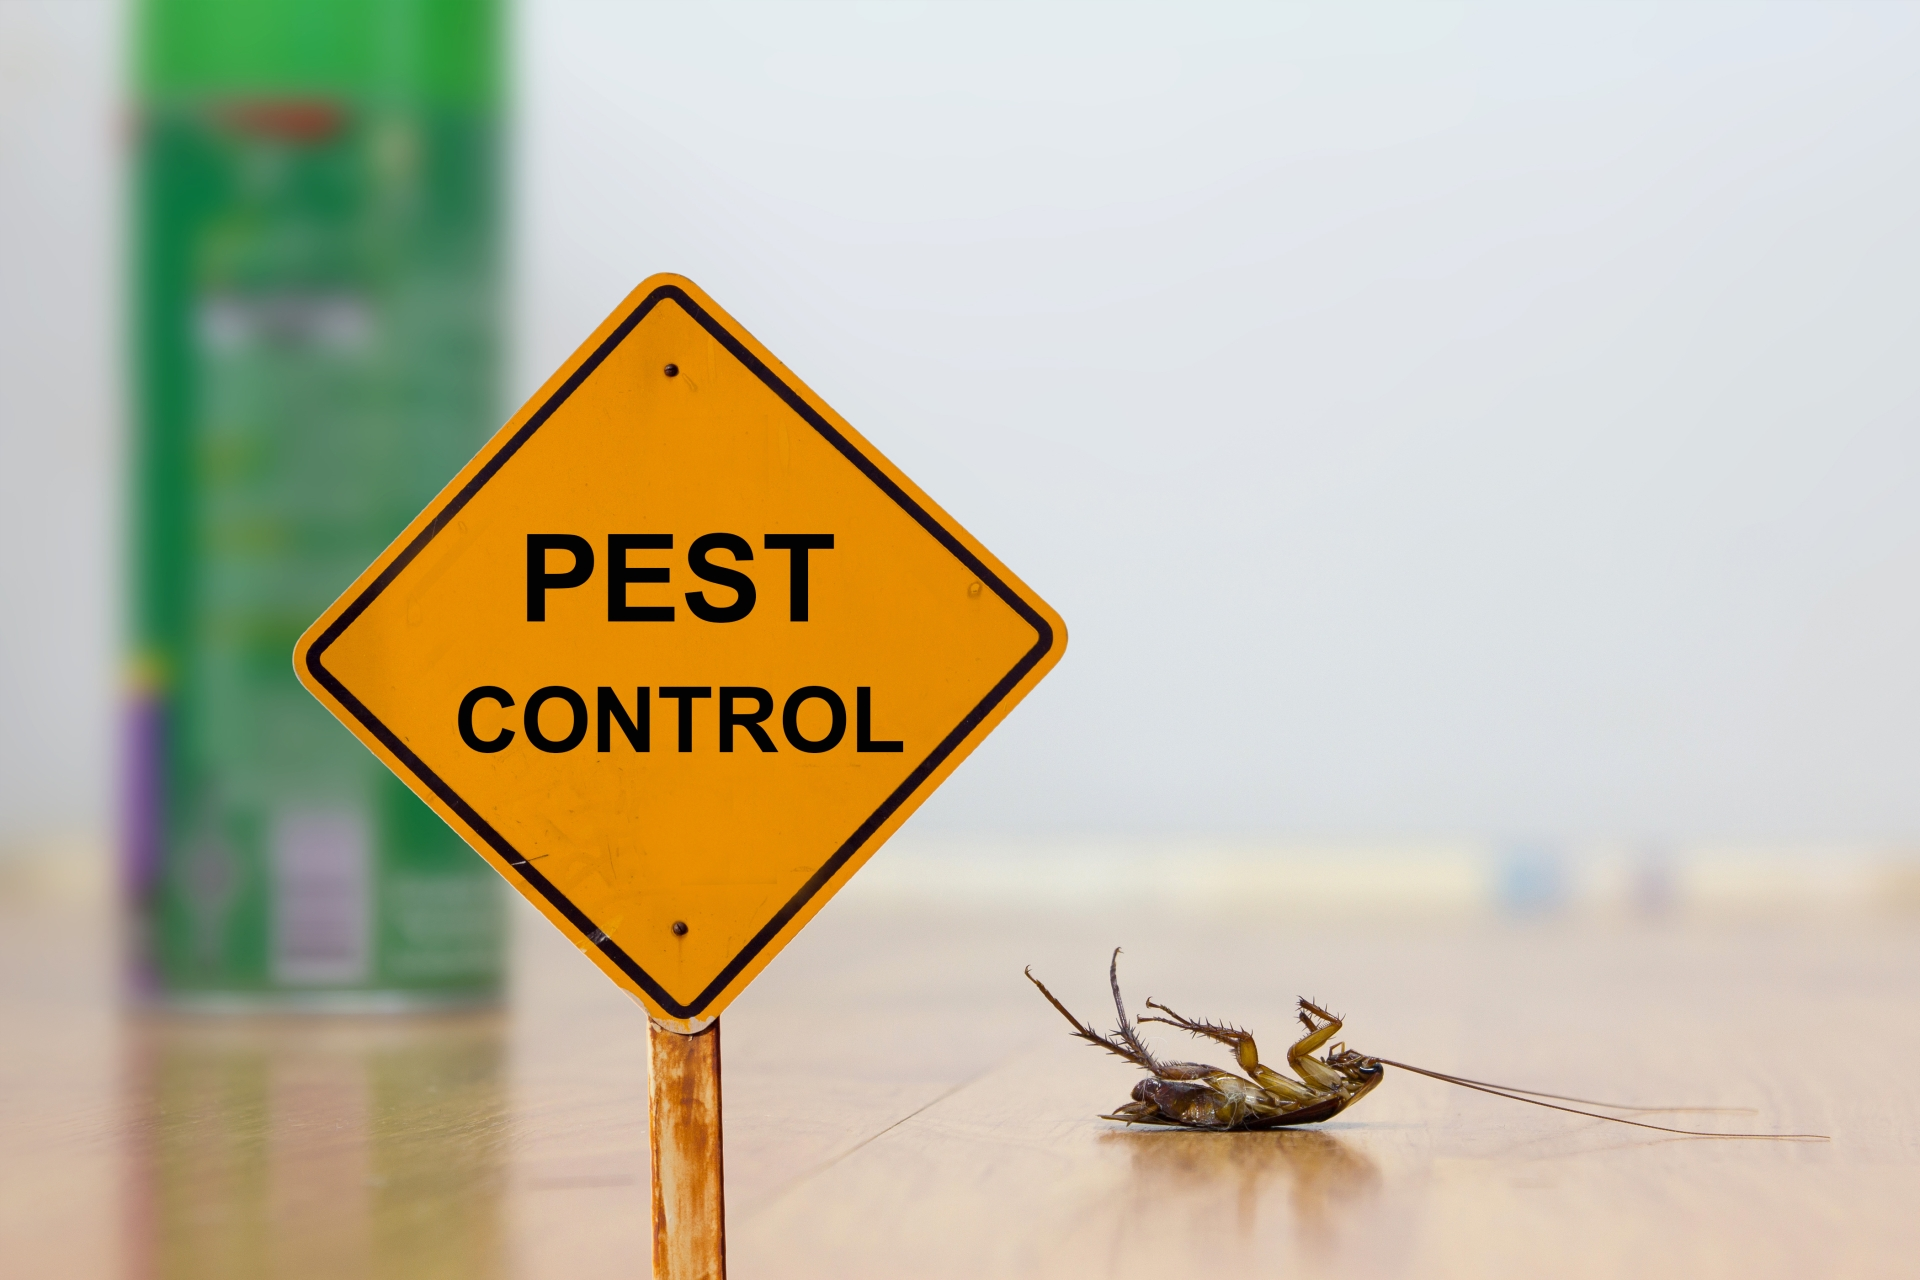 24 Hour Pest Control, Pest Control in Bushey, Bushey Heath, WD23. Call Now 020 8166 9746